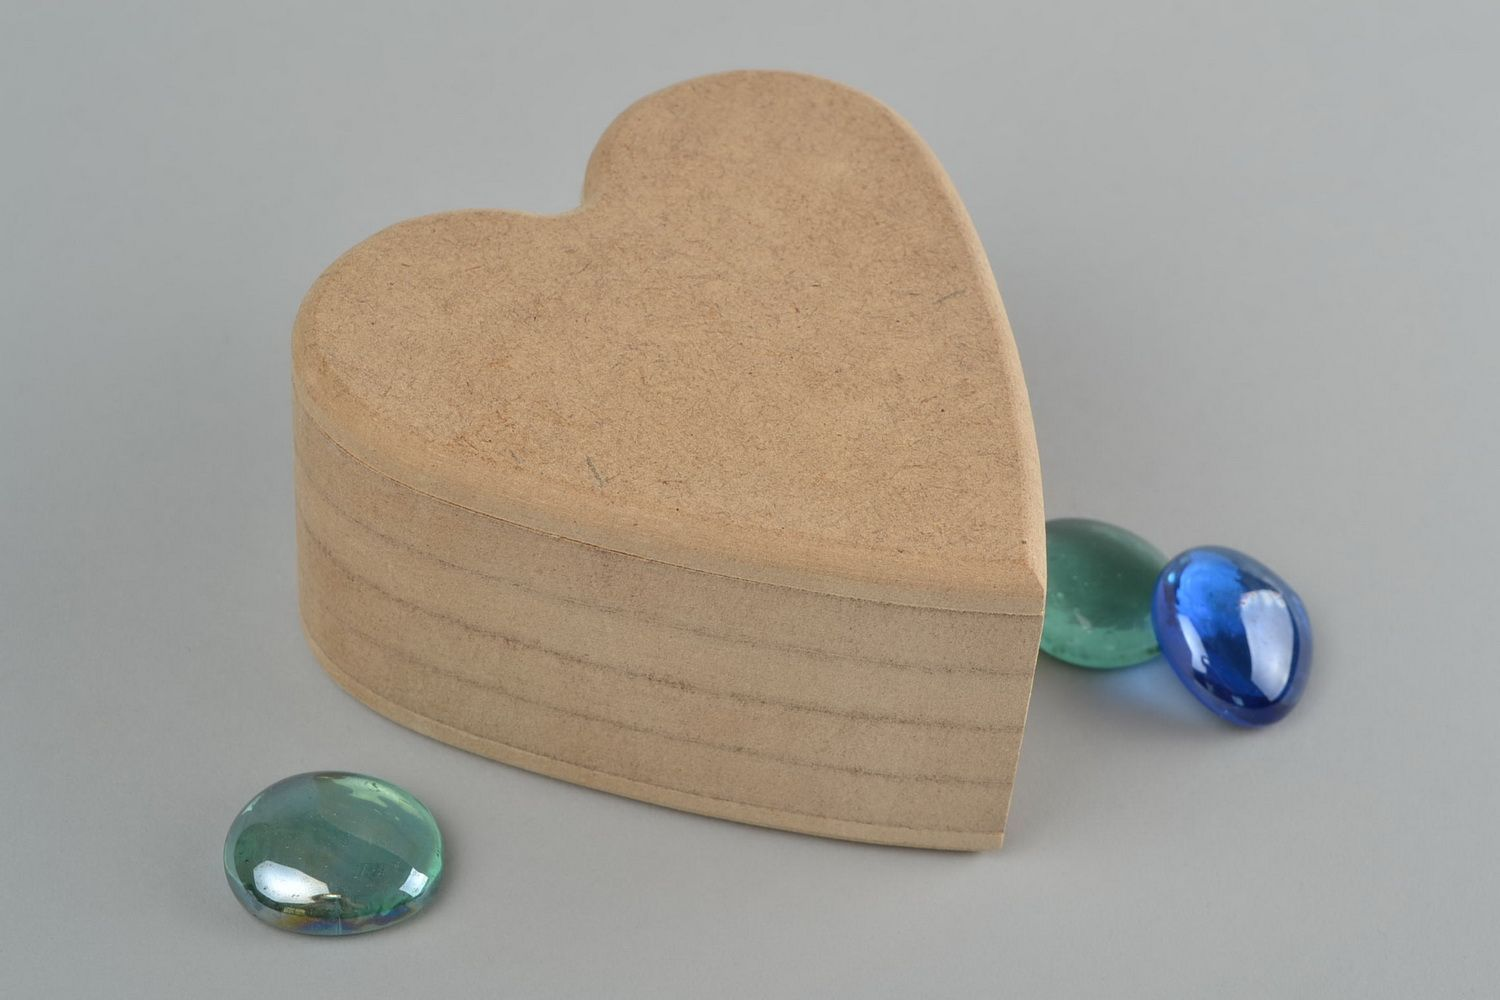 MADEHEART Homemade heart shaped MDF craft blank jewelry box for